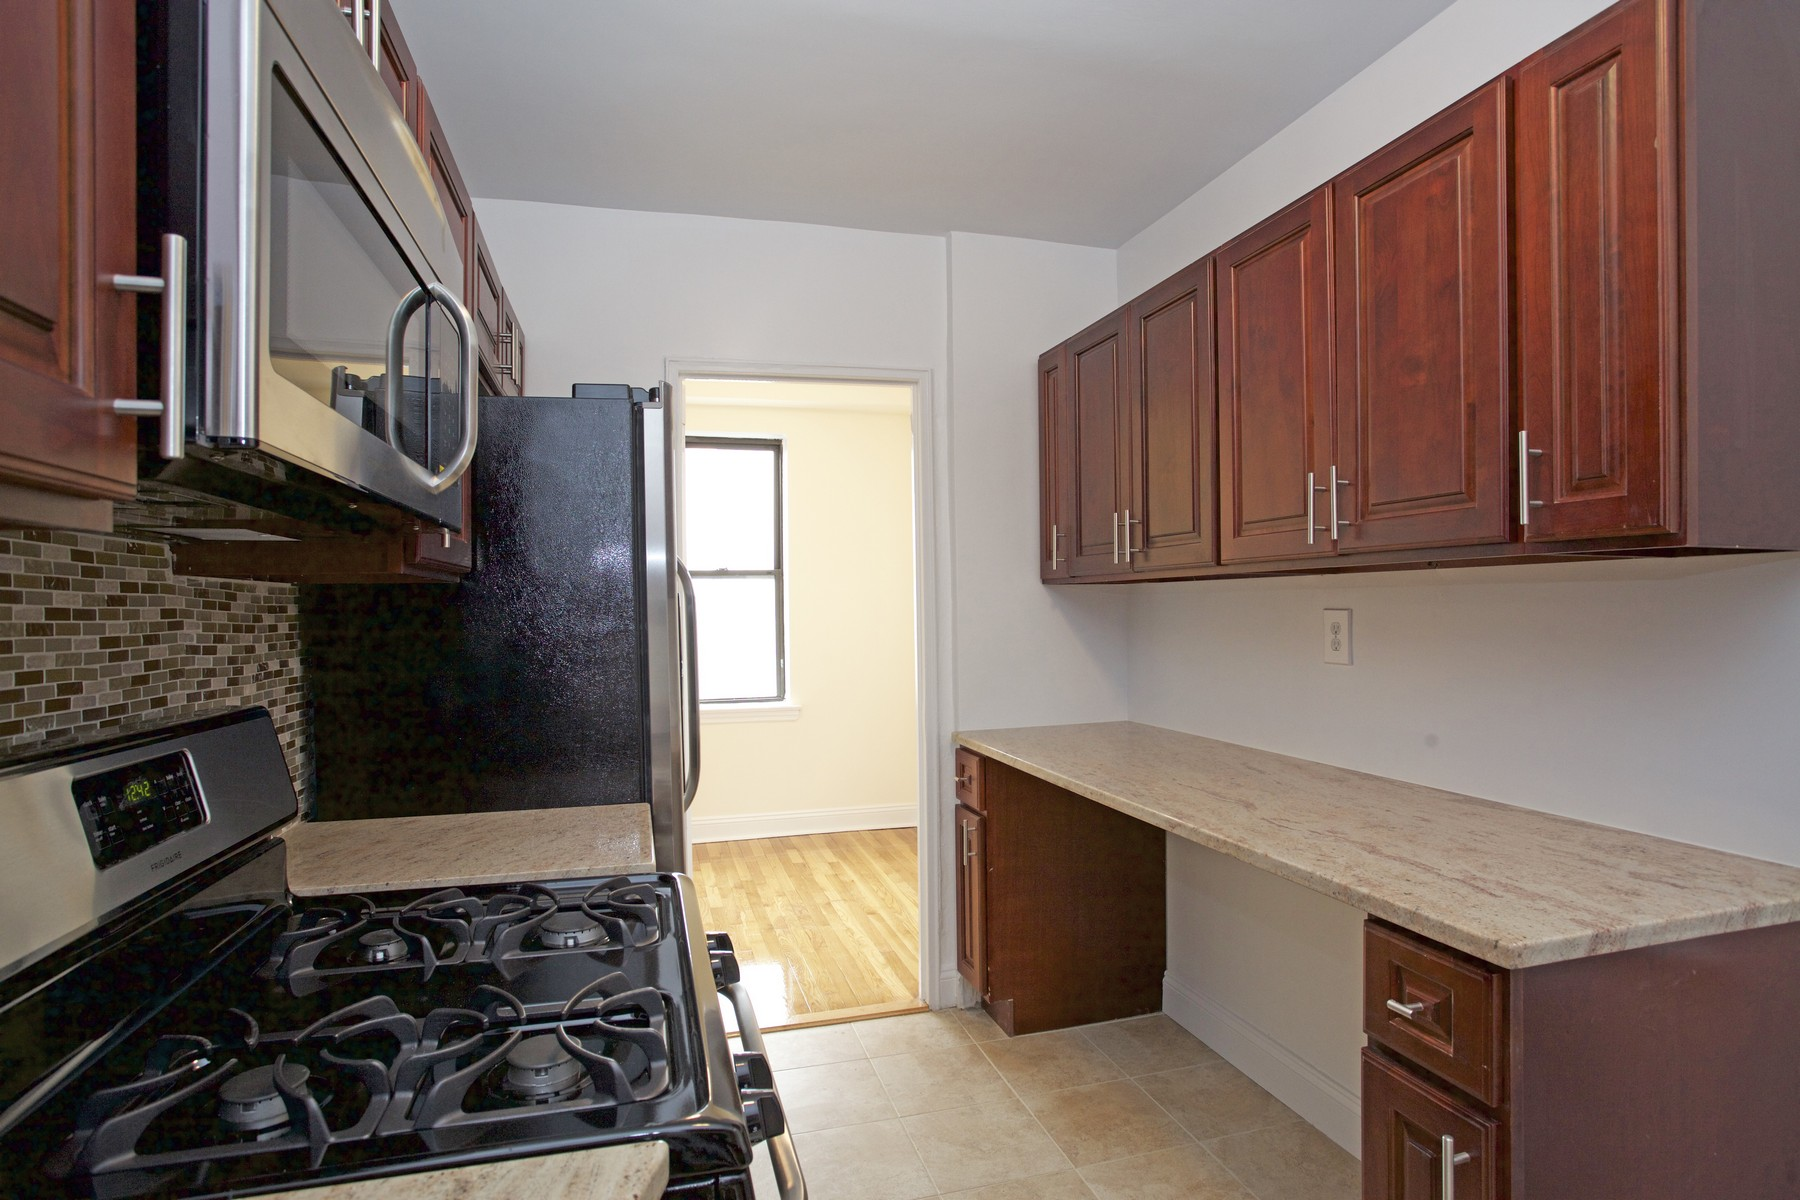 Co-op for Sale at Spacious JR 4 Sponsor Apartment Riverdale, New York, 10463 United States